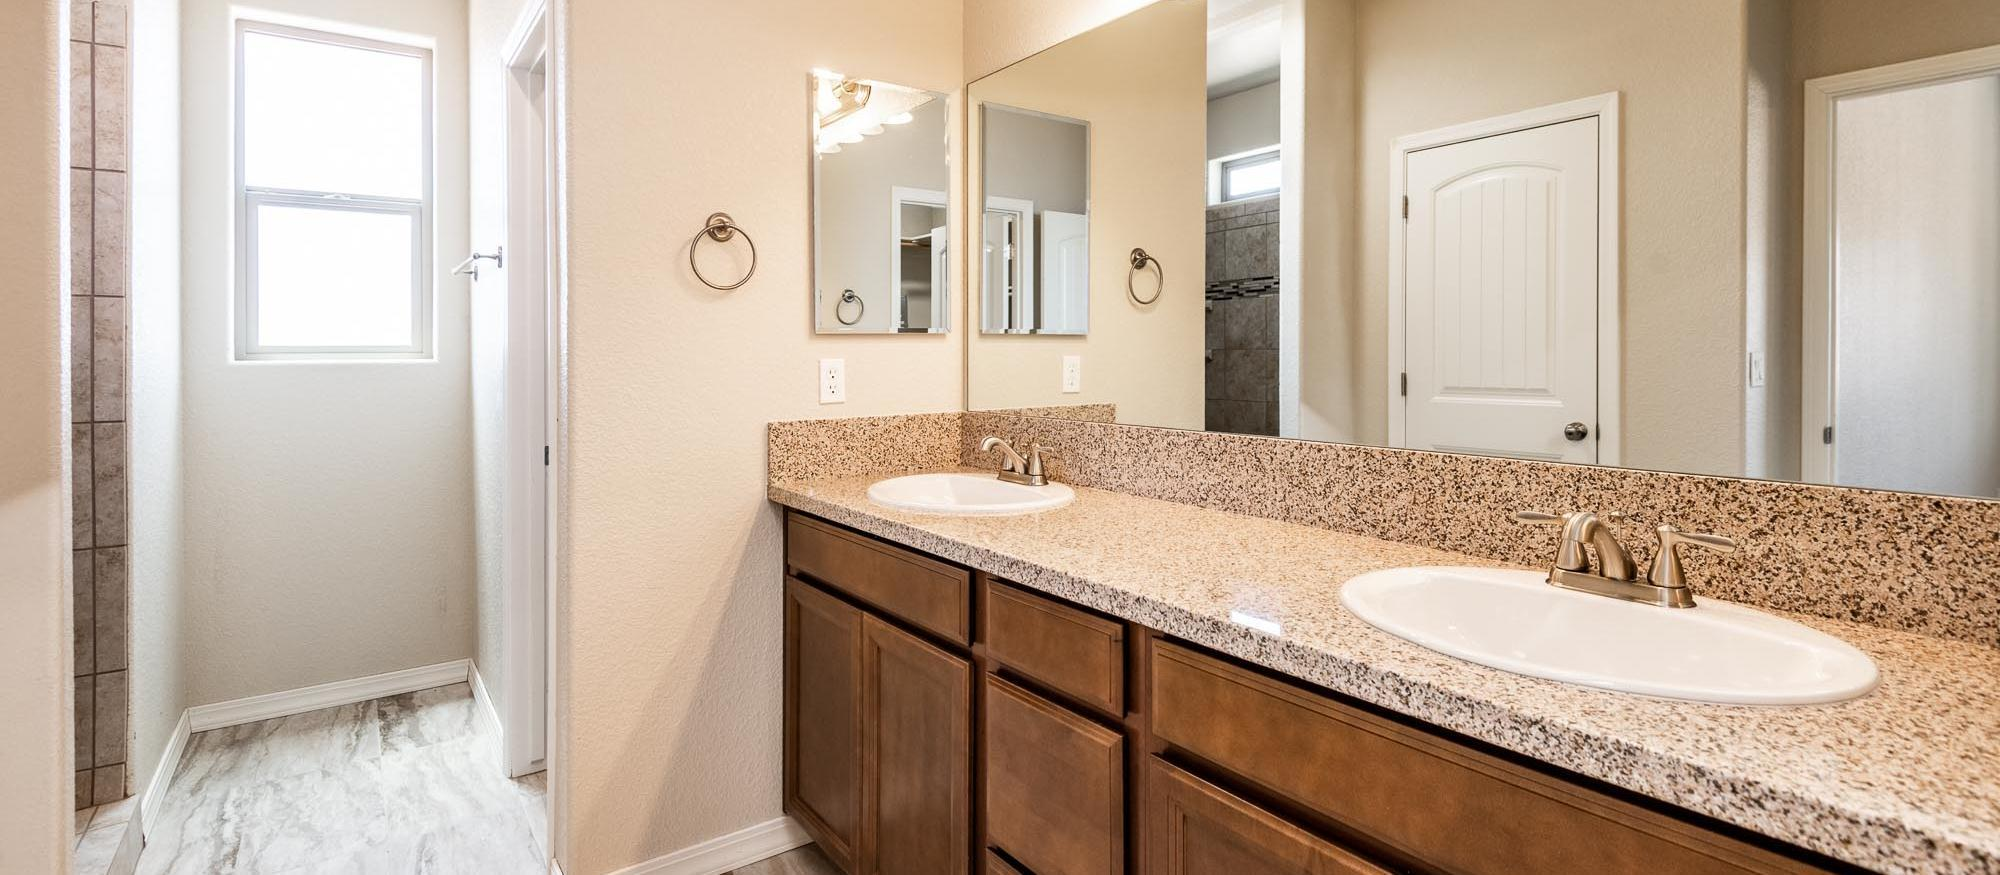 Bathroom featured in the Palo Verde 1768 By Angle Homes in Kingman-Lake Havasu City, AZ